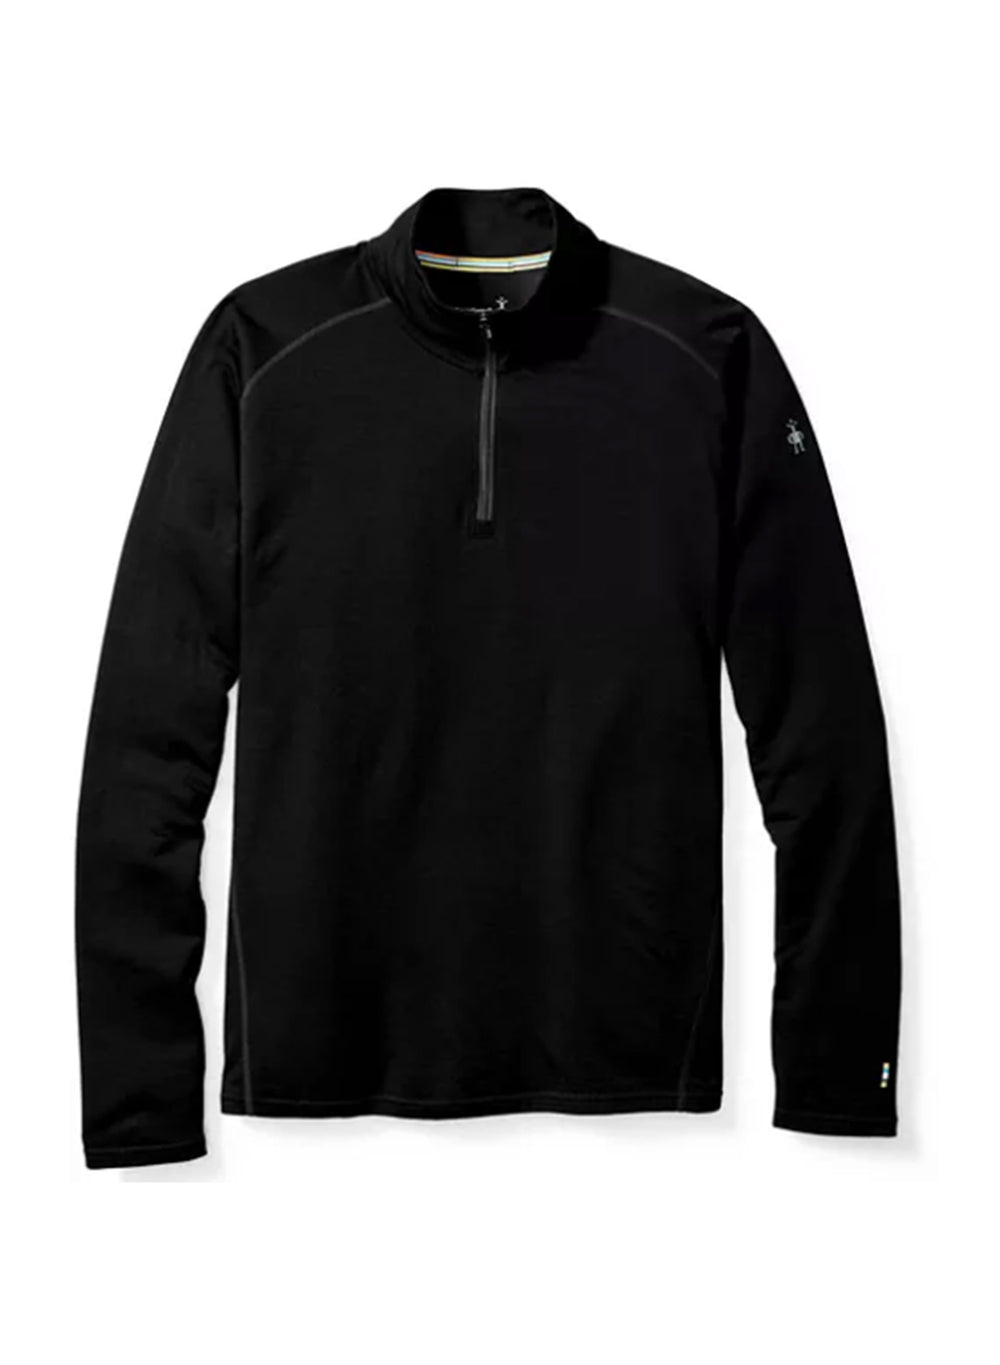 Smartwool Merino 150 Baselayer 1/4 Zip - Men's